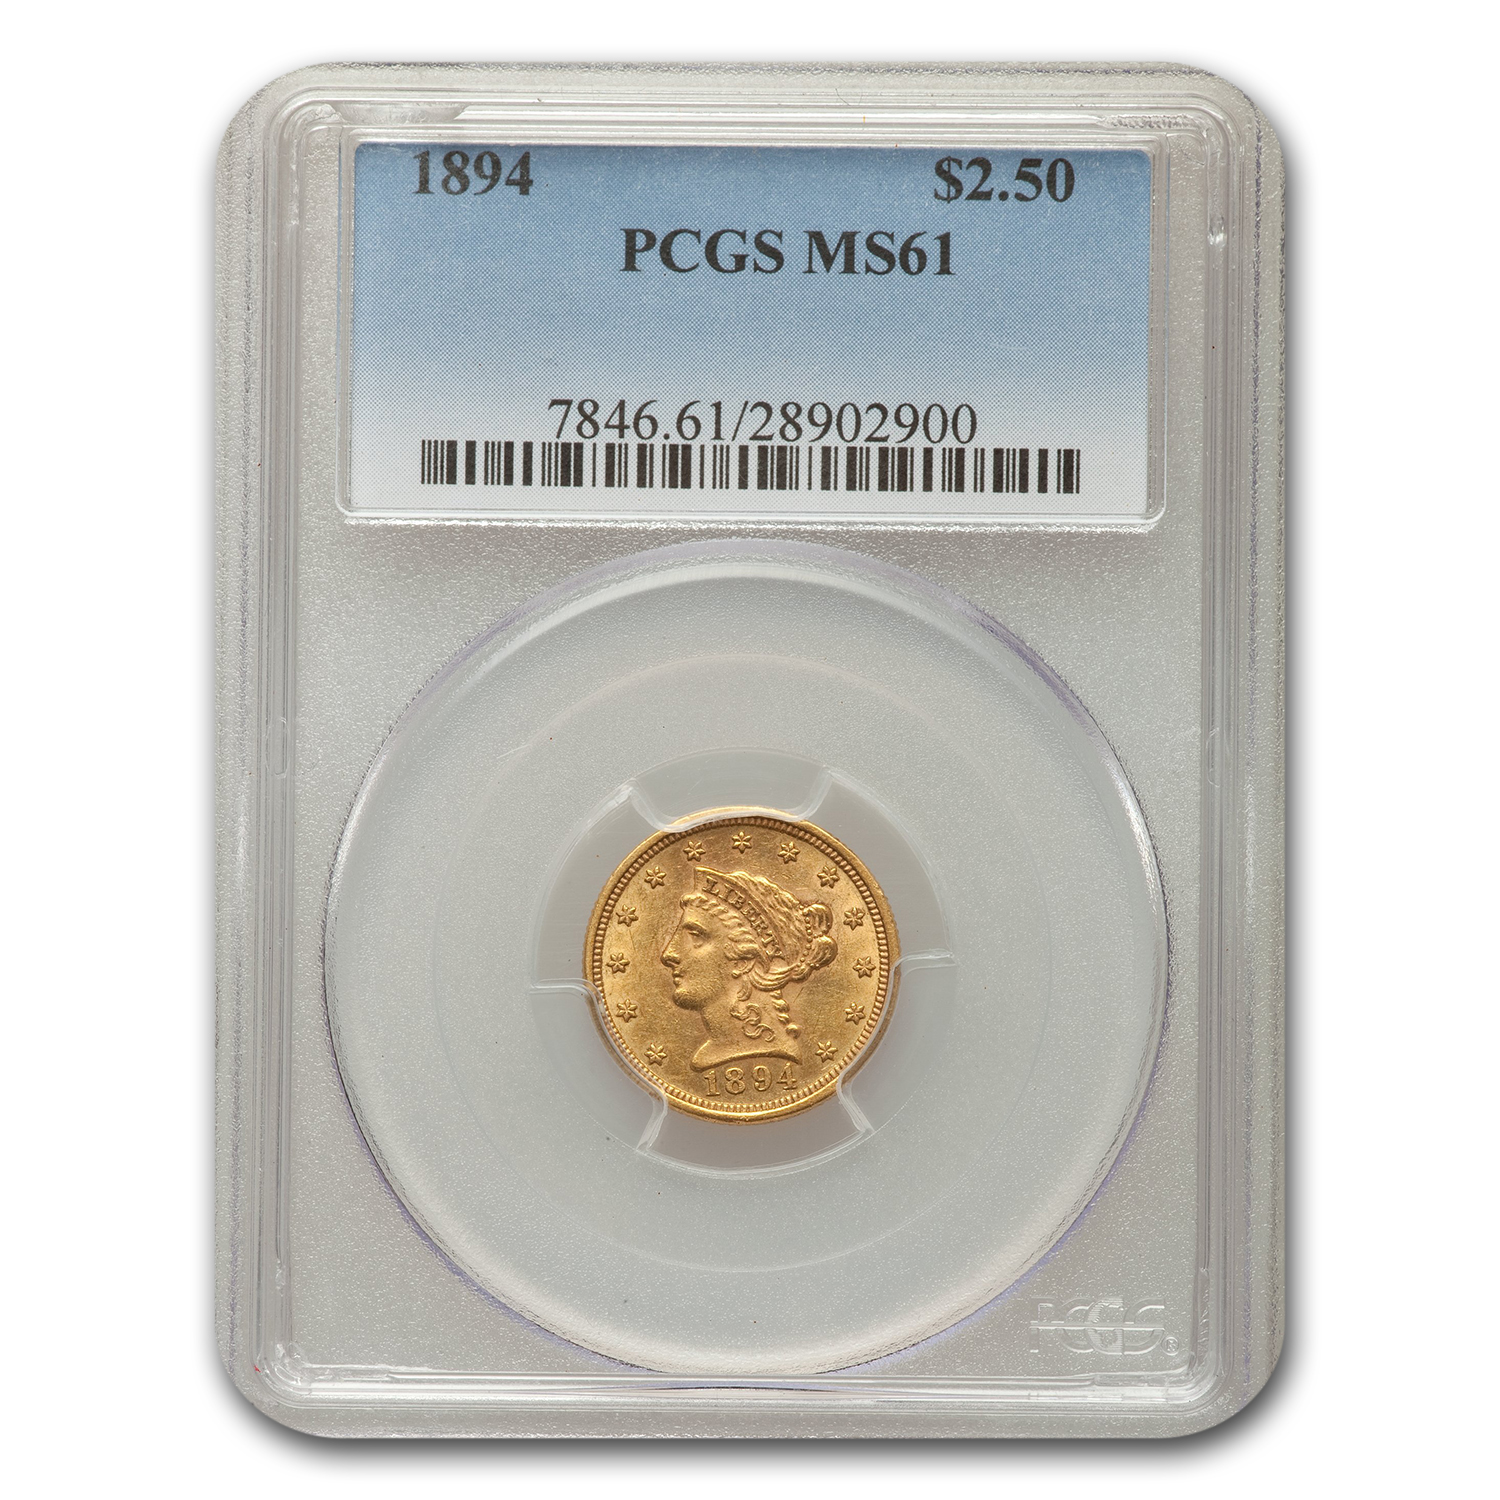 1894 $2.50 Liberty Gold Quarter Eagle MS-61 PCGS